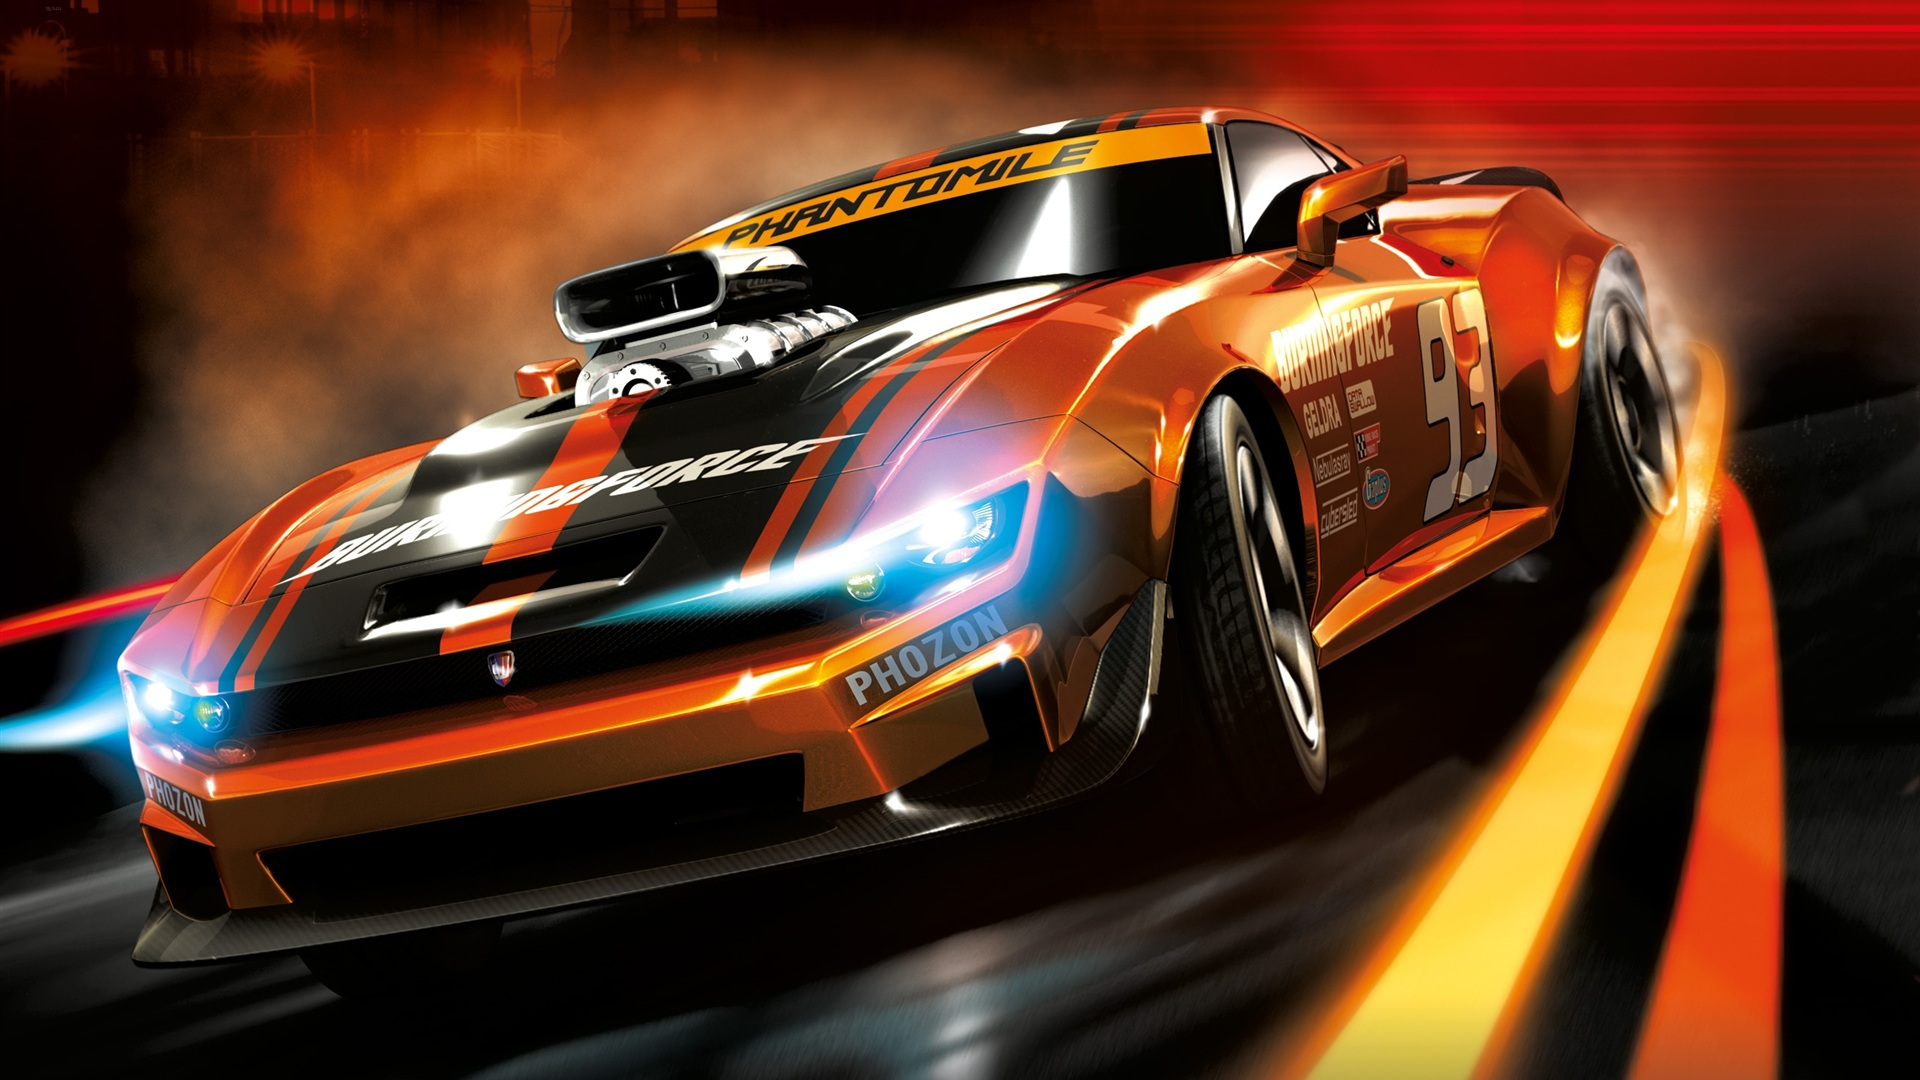 11 Awesome And Cool Cars Wallpapers